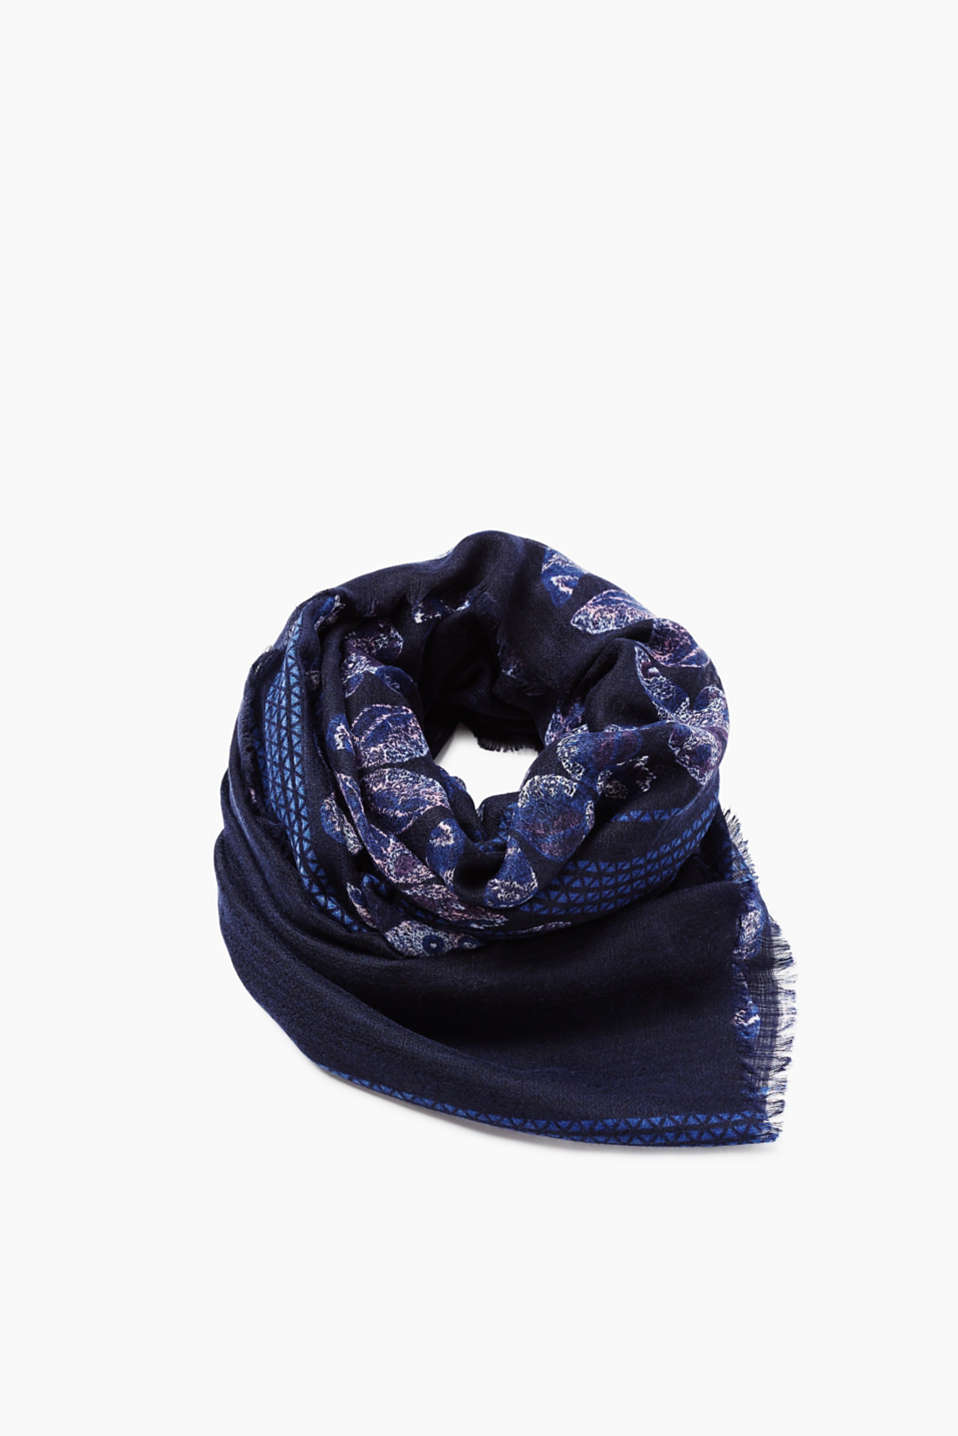 Delicate scarf with an abstract butterfly and mosaic print with a fine texture